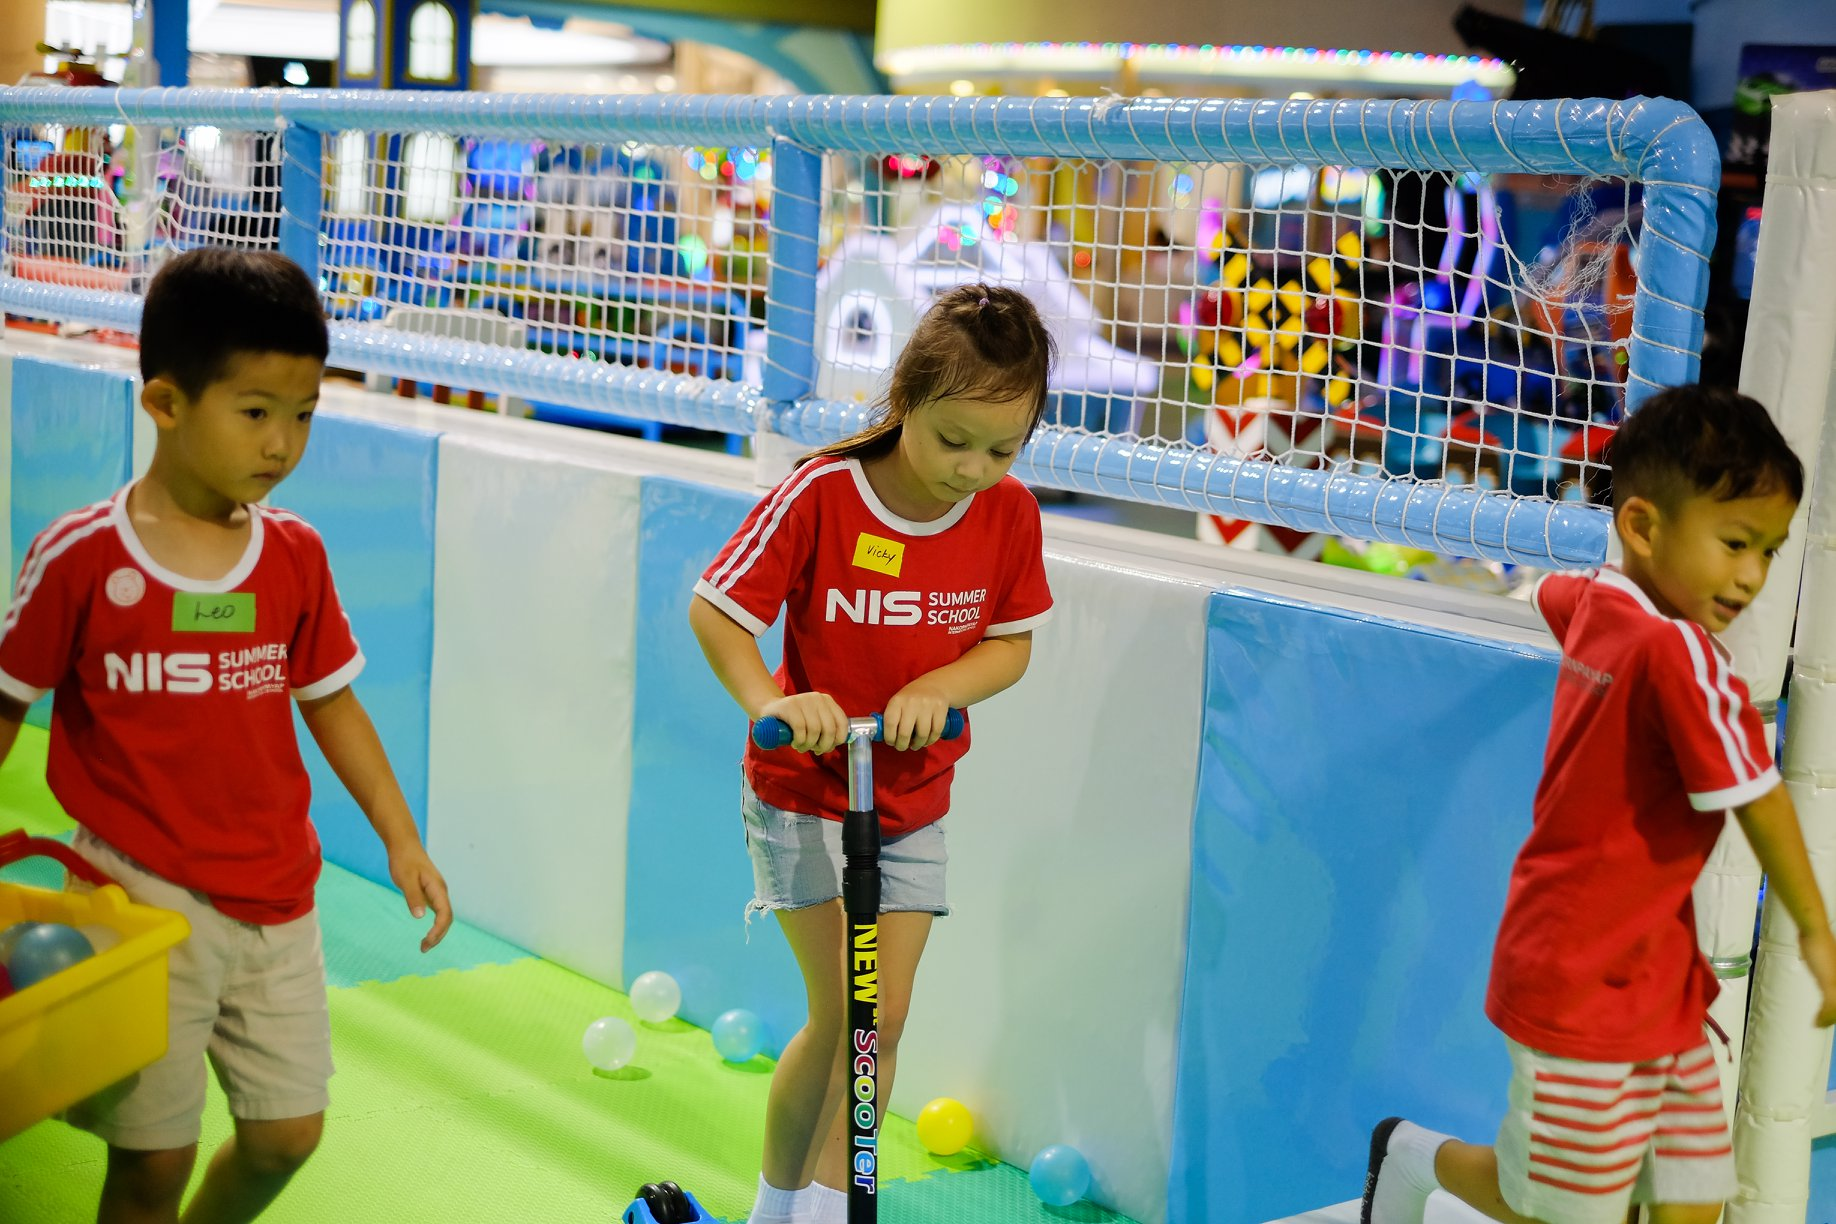 NIS-Summer-School-2019-Day-Kiddy-Land-2